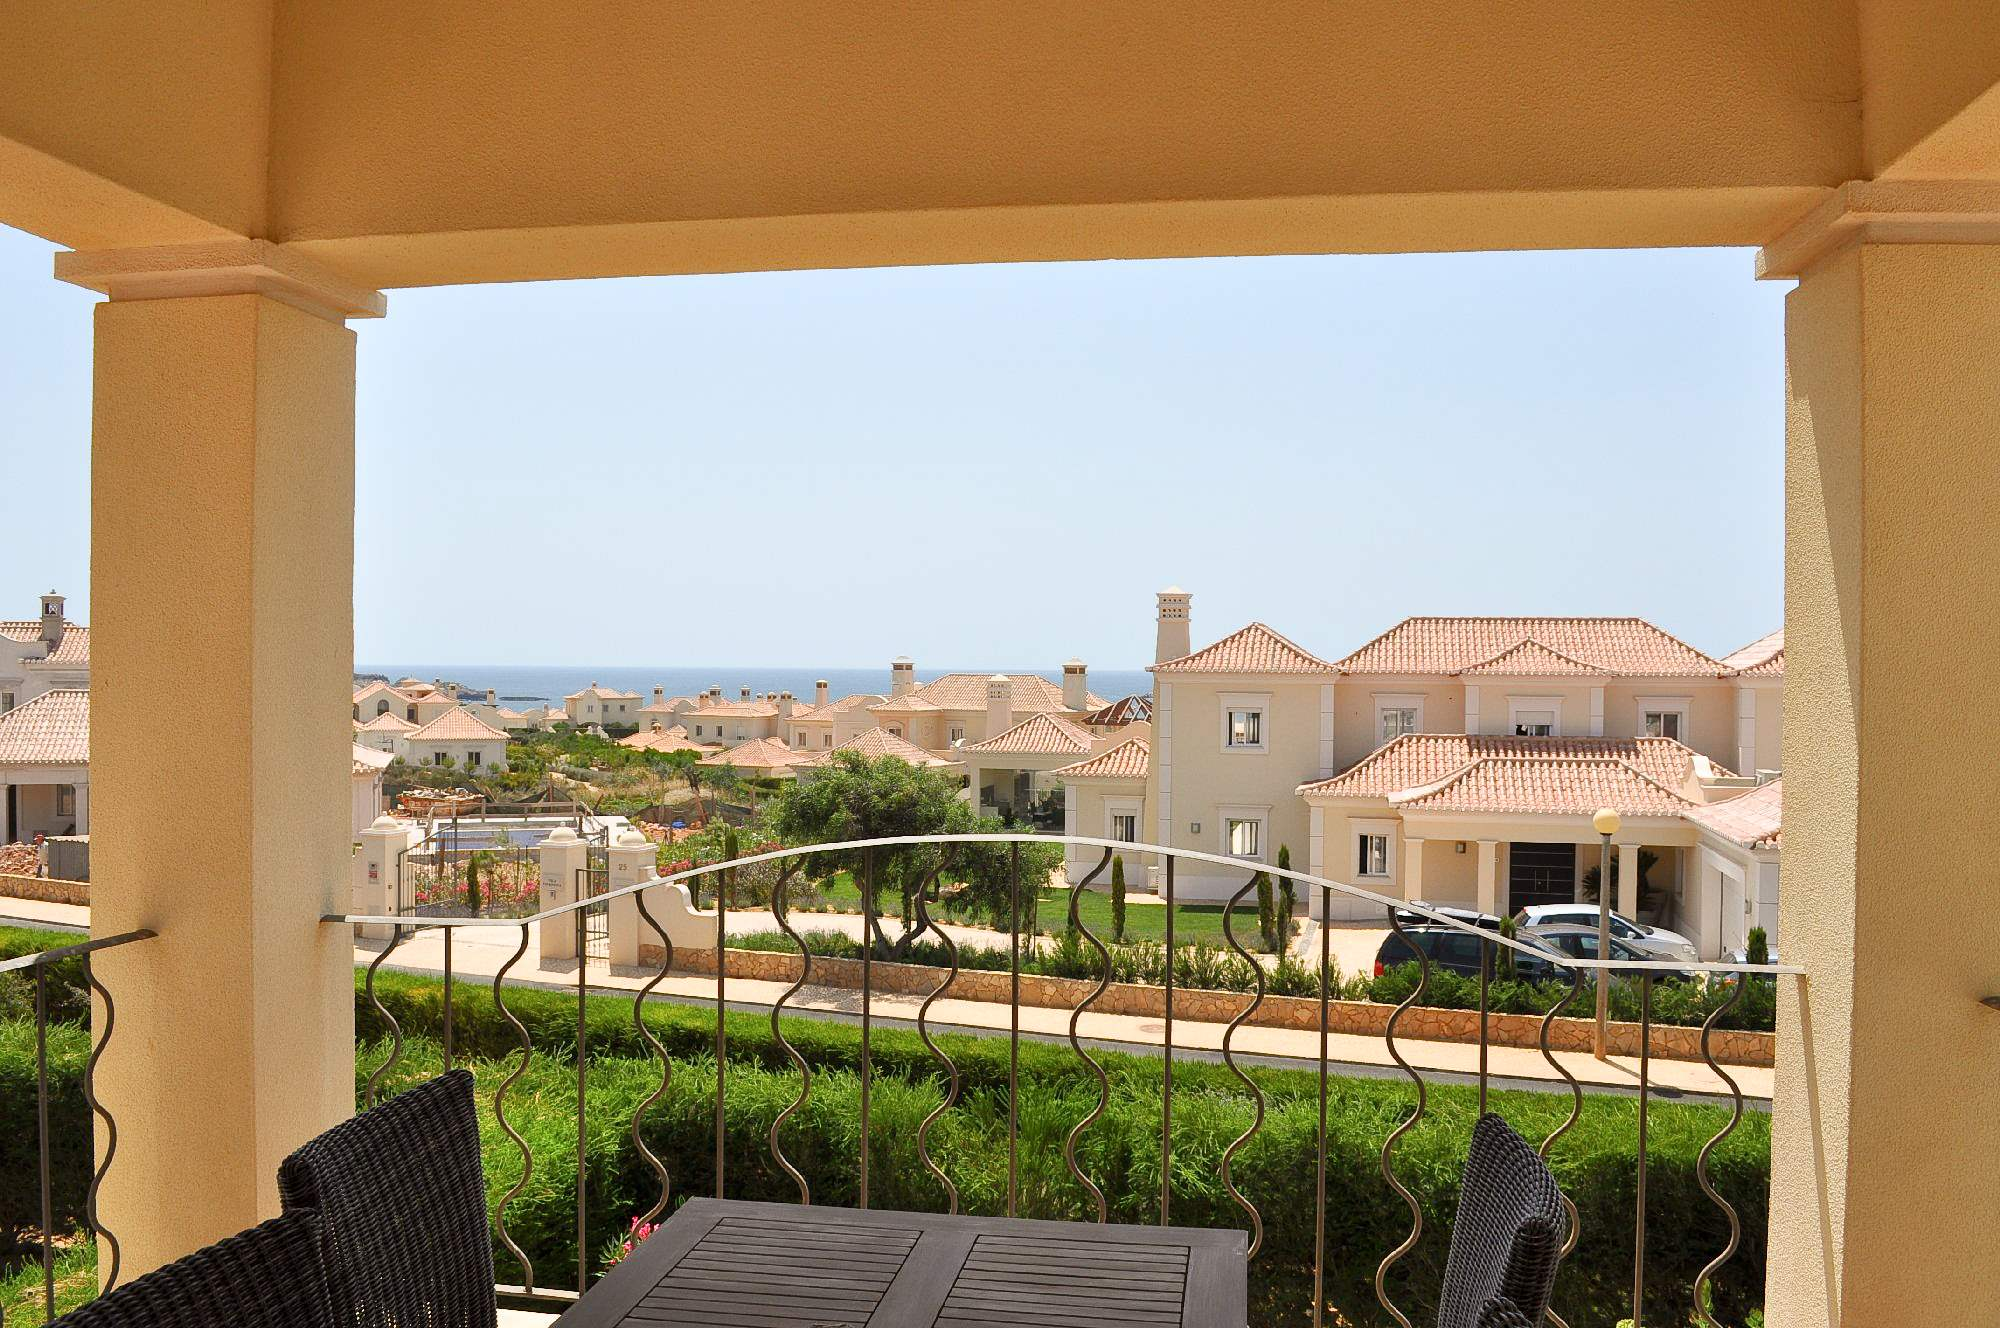 Martinhal Vilas Mimosa Two Bedroom, 2 bedroom villa in Martinhal Sagres, Algarve Photo #10